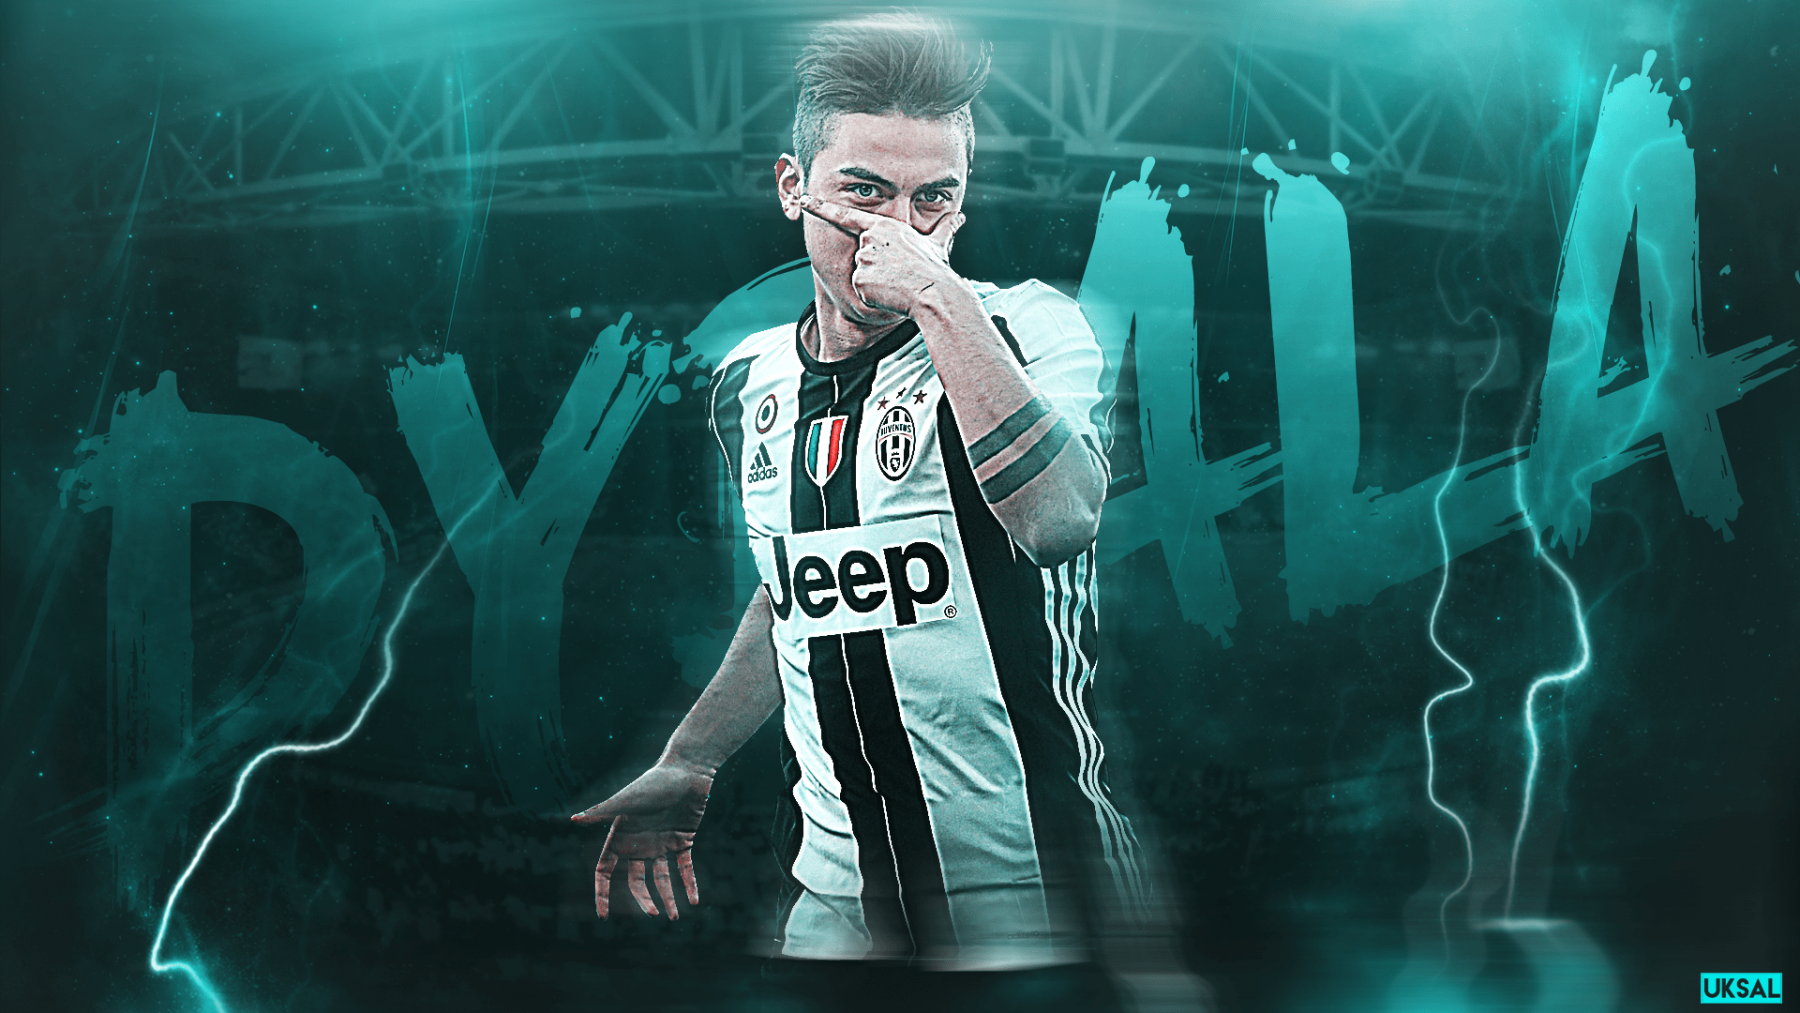 Paulo Dybala Hd Wallpapers 7wallpapers Net